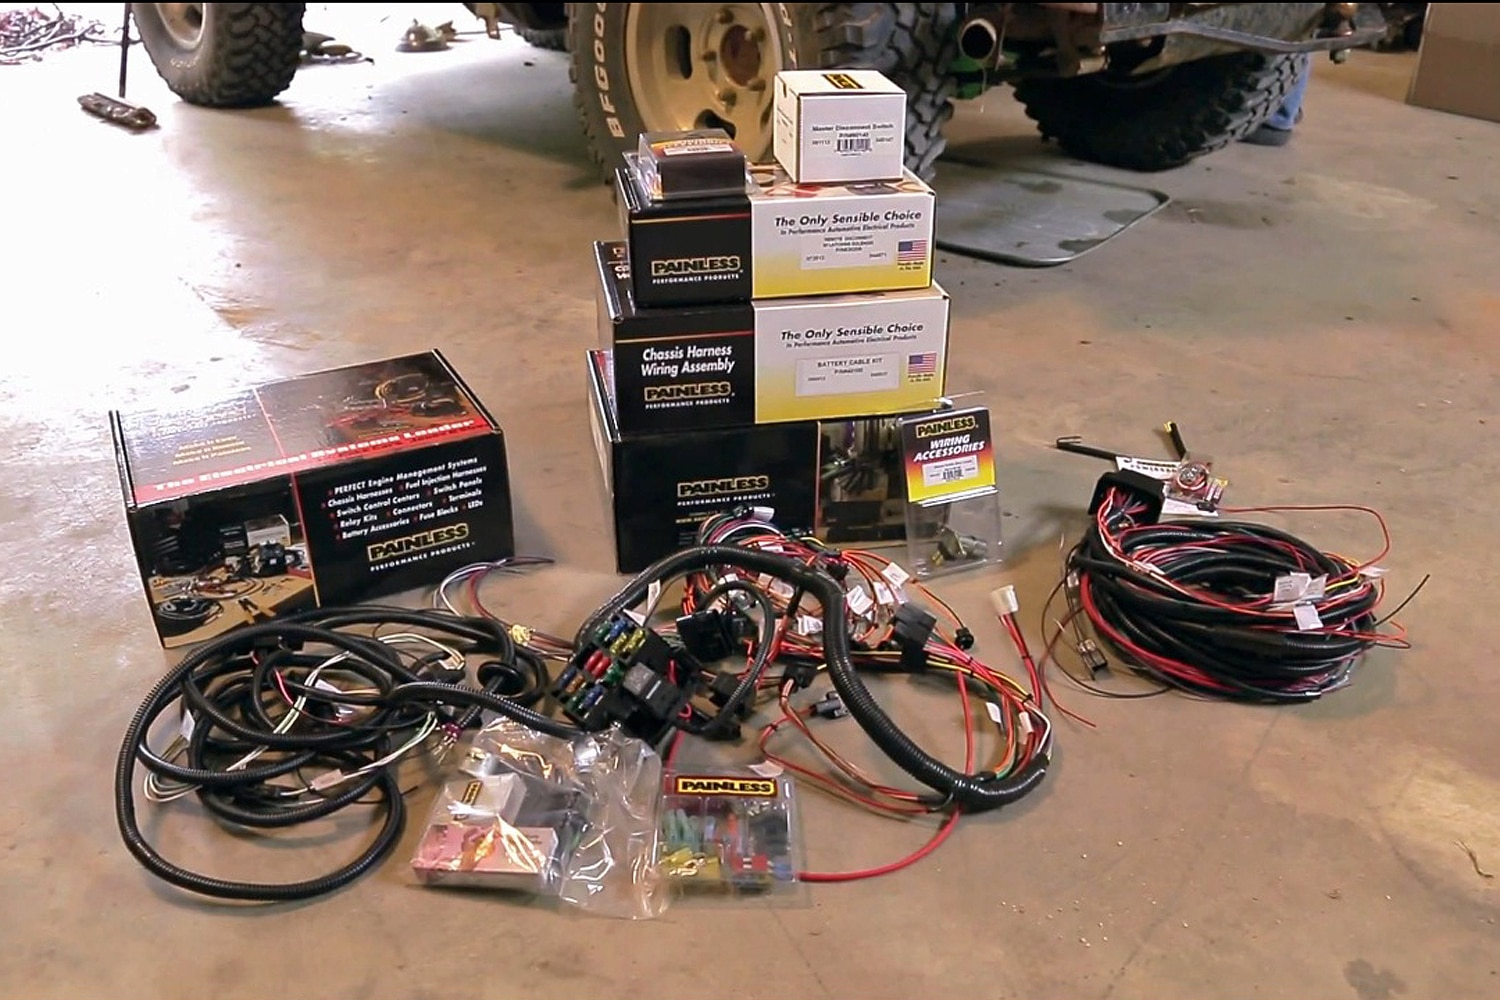 small resolution of painless cj wiring harness wiring diagram schematics cj7 painless wiring harness cj7 painless wiring harness